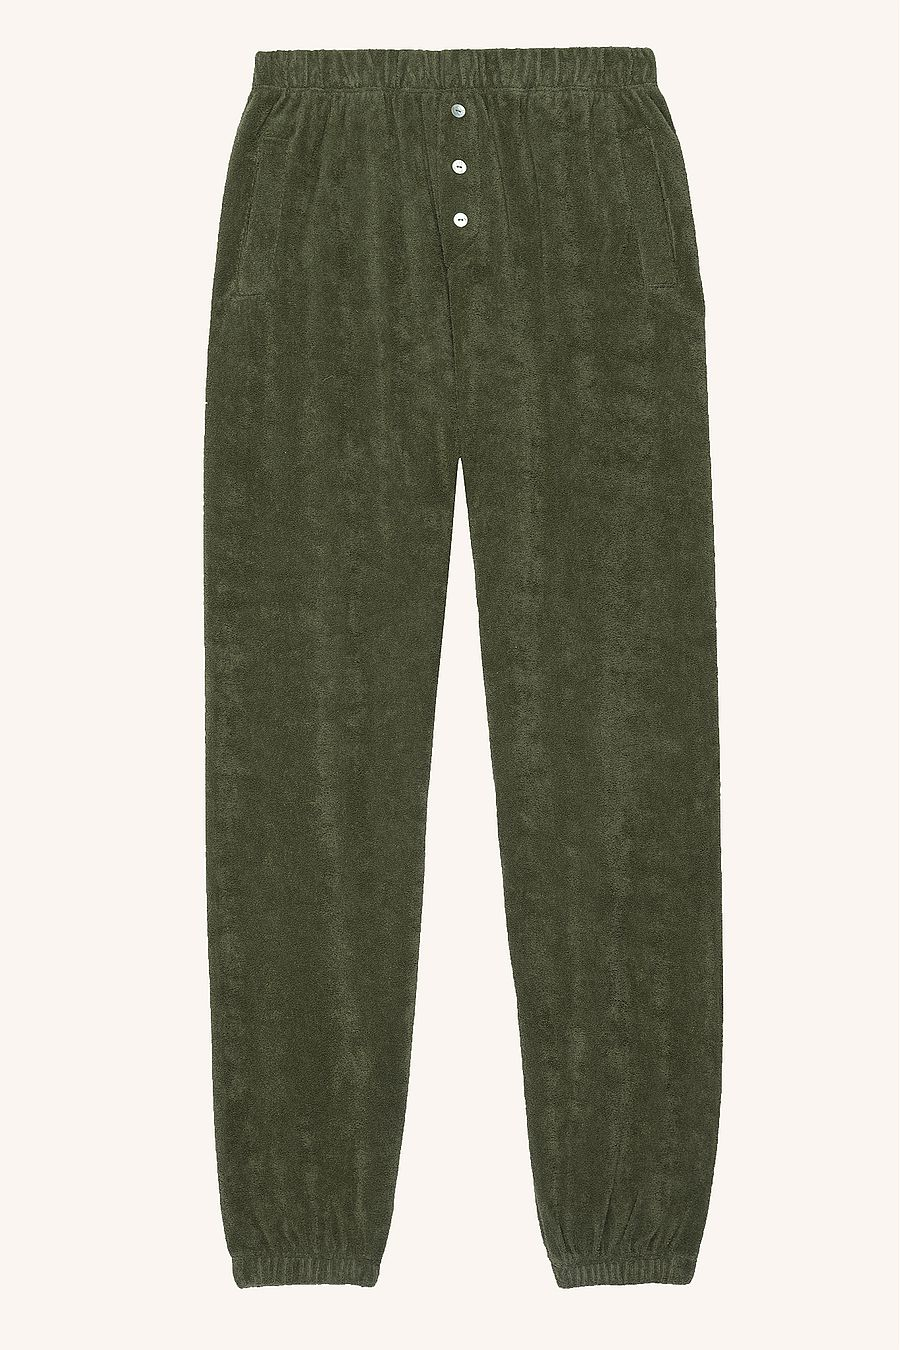 DONNI. Terry Henley Sweatpant - Basil